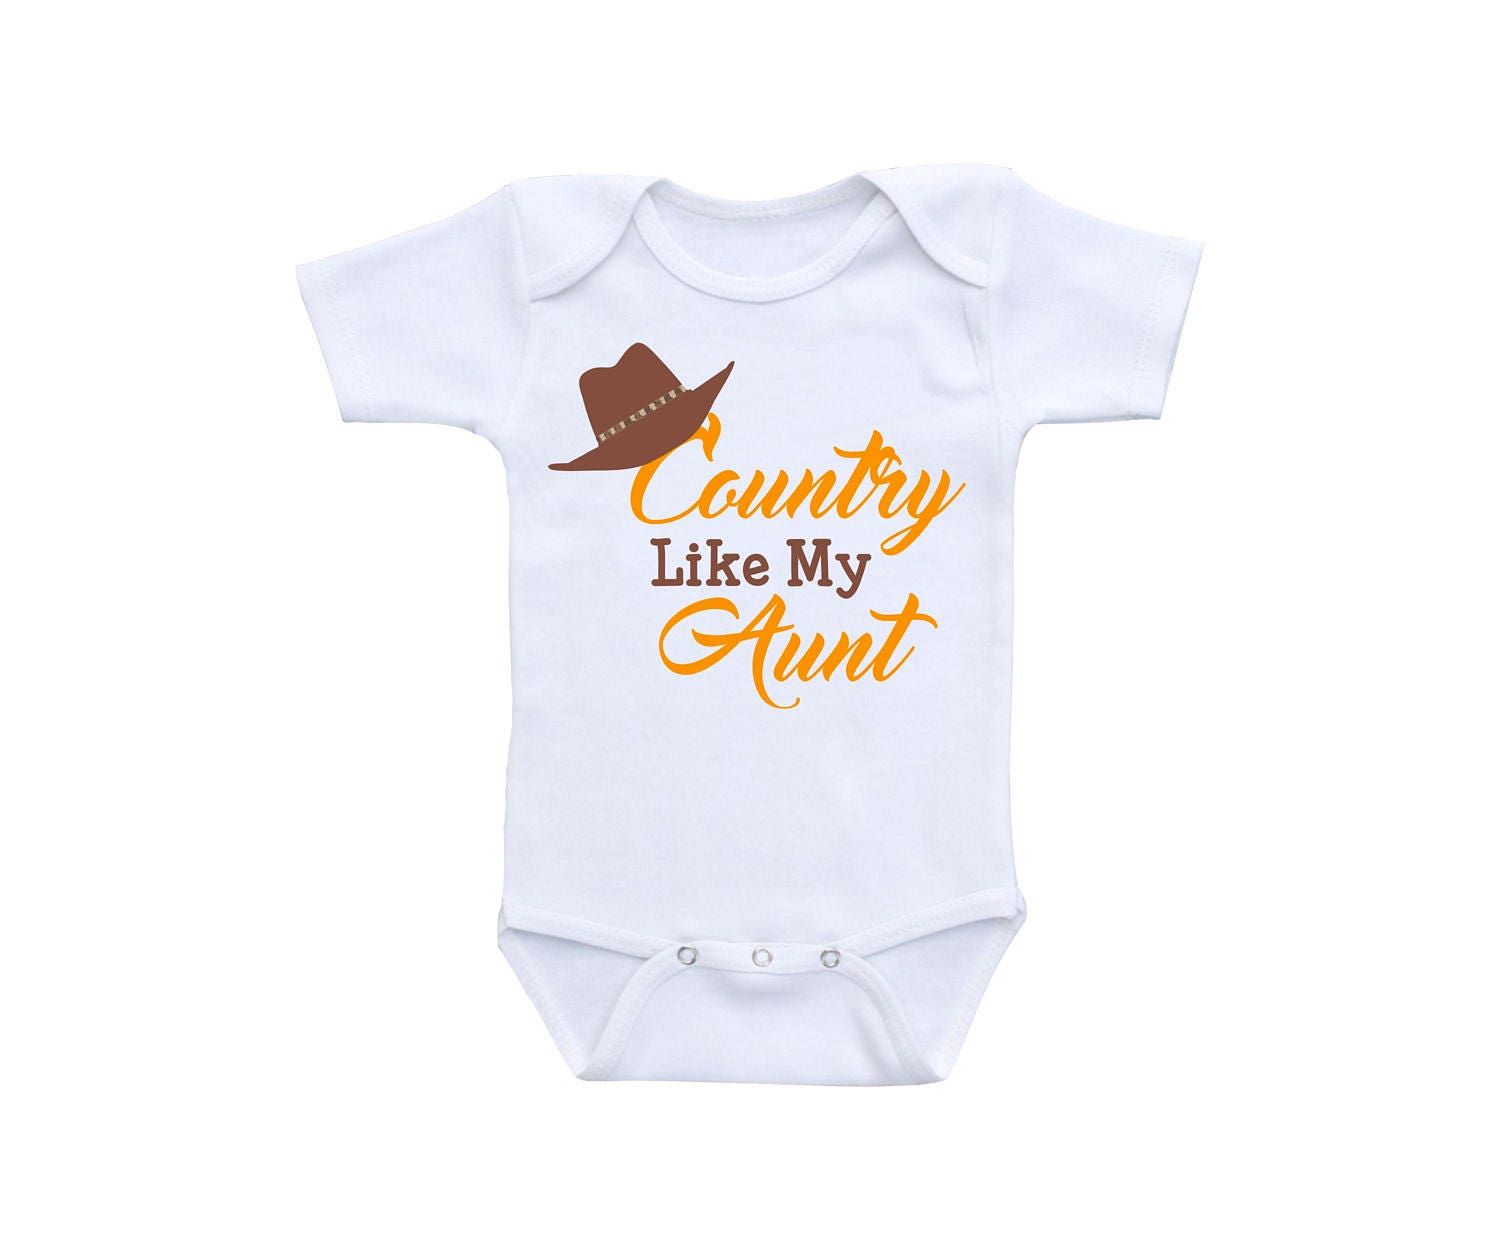 Funny baby clothes or gerber onesie 174 funny baby onesies 174 aunt